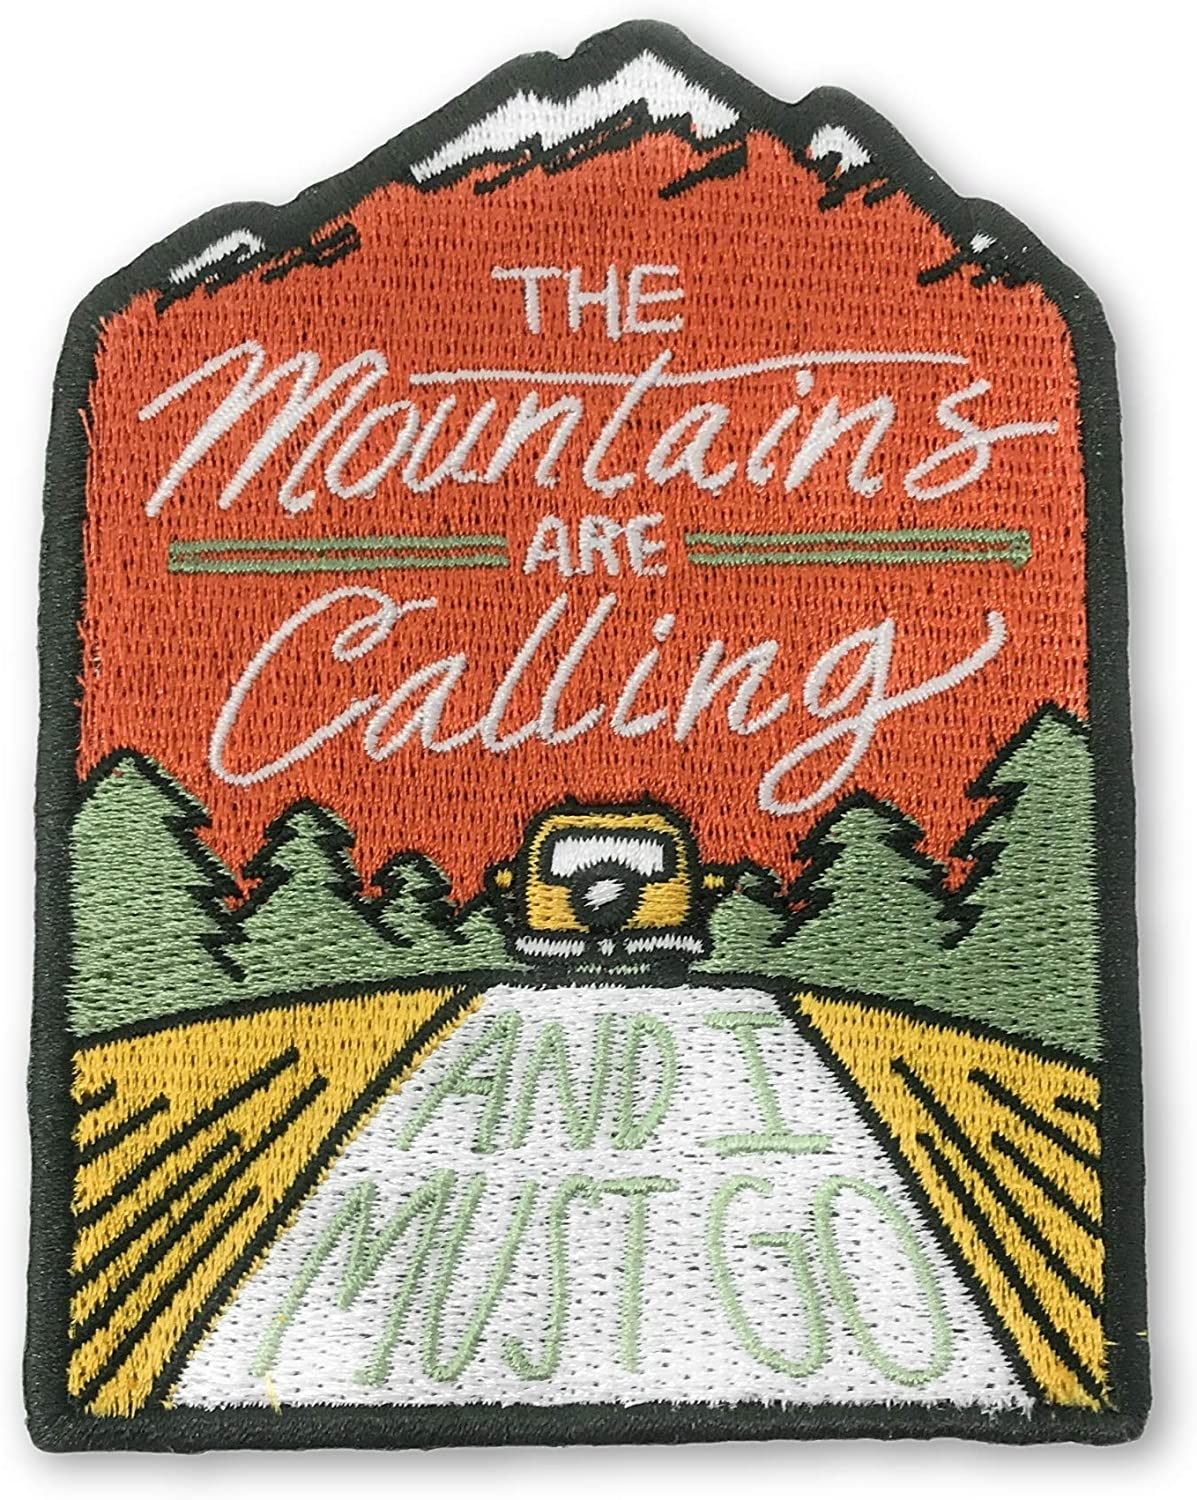 O'Houlihans - The Mountains are Calling and I Must Go Iron on Patch - Perfect Morale Patch for Hiking, Adventures, Nature, Travel, and More - Premium Quality Embroidered Patch